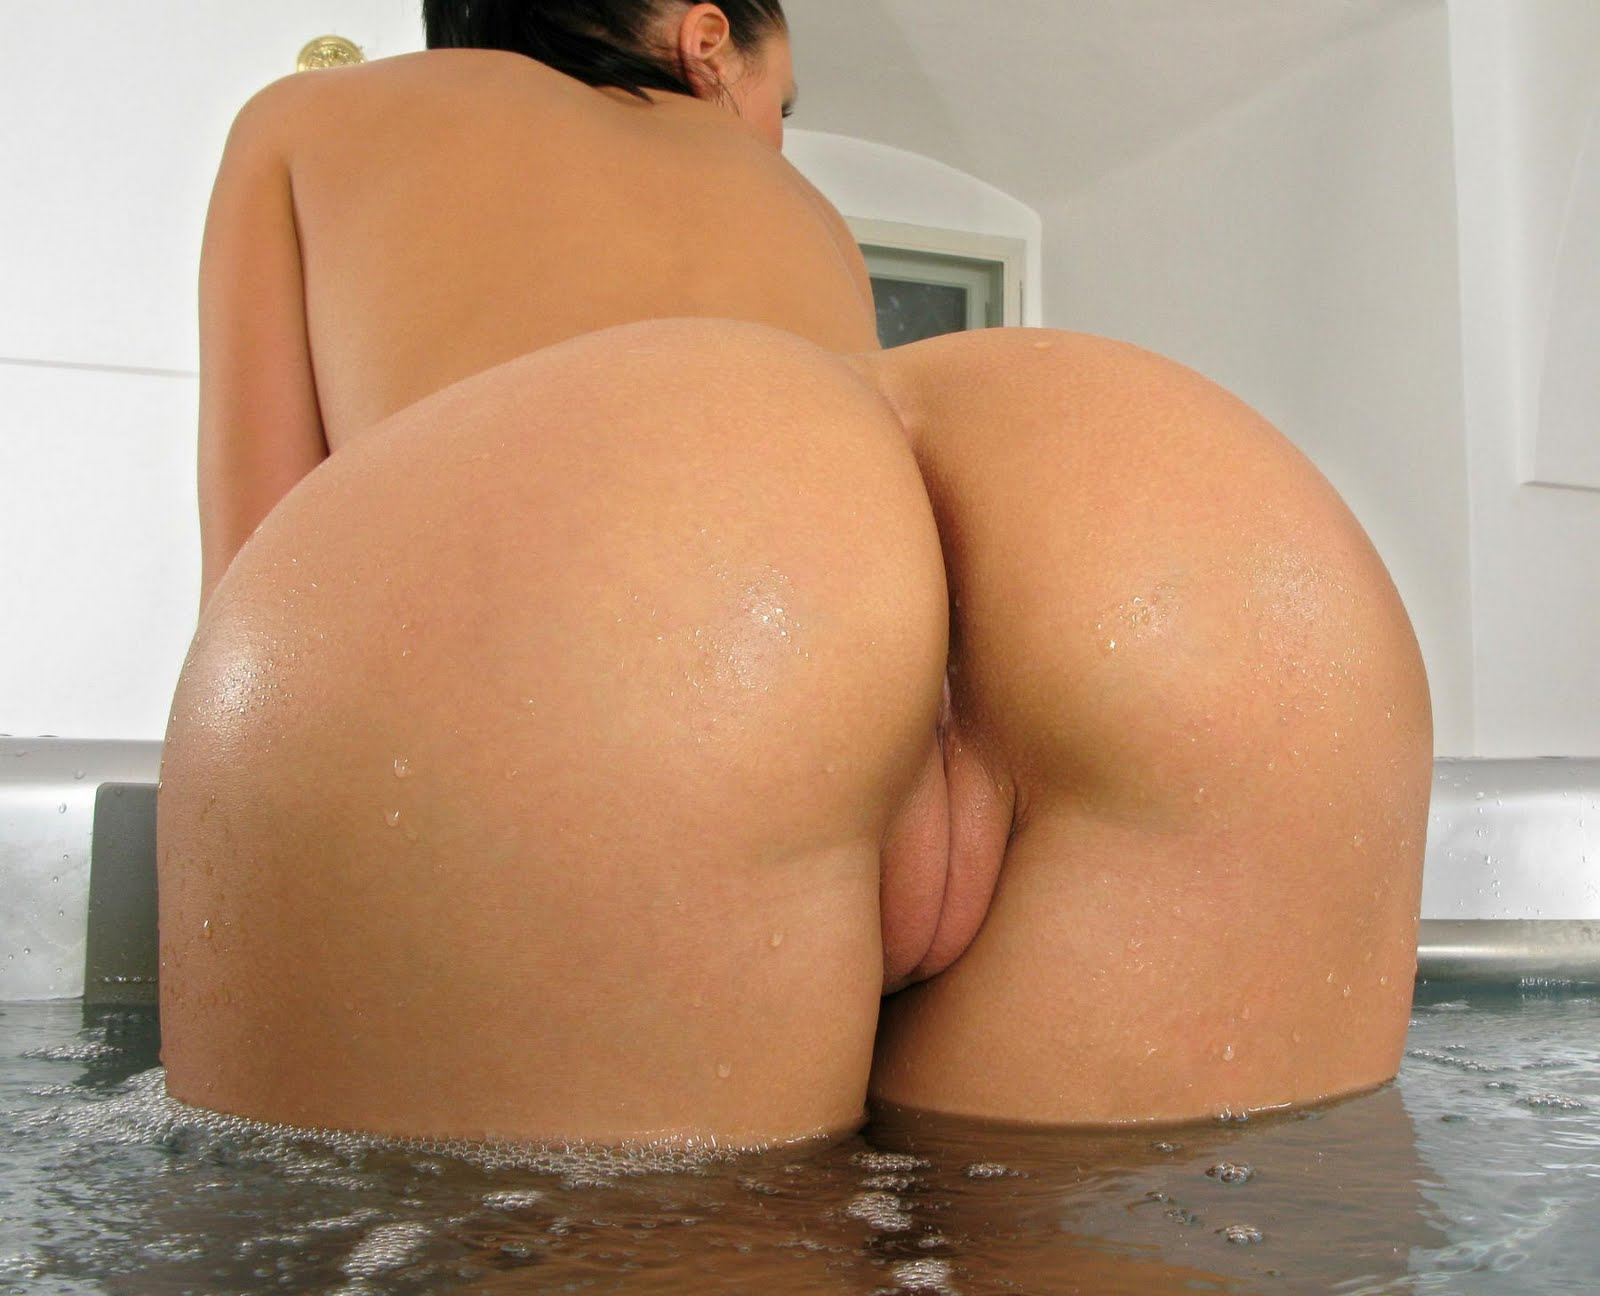 Big ass videos hd